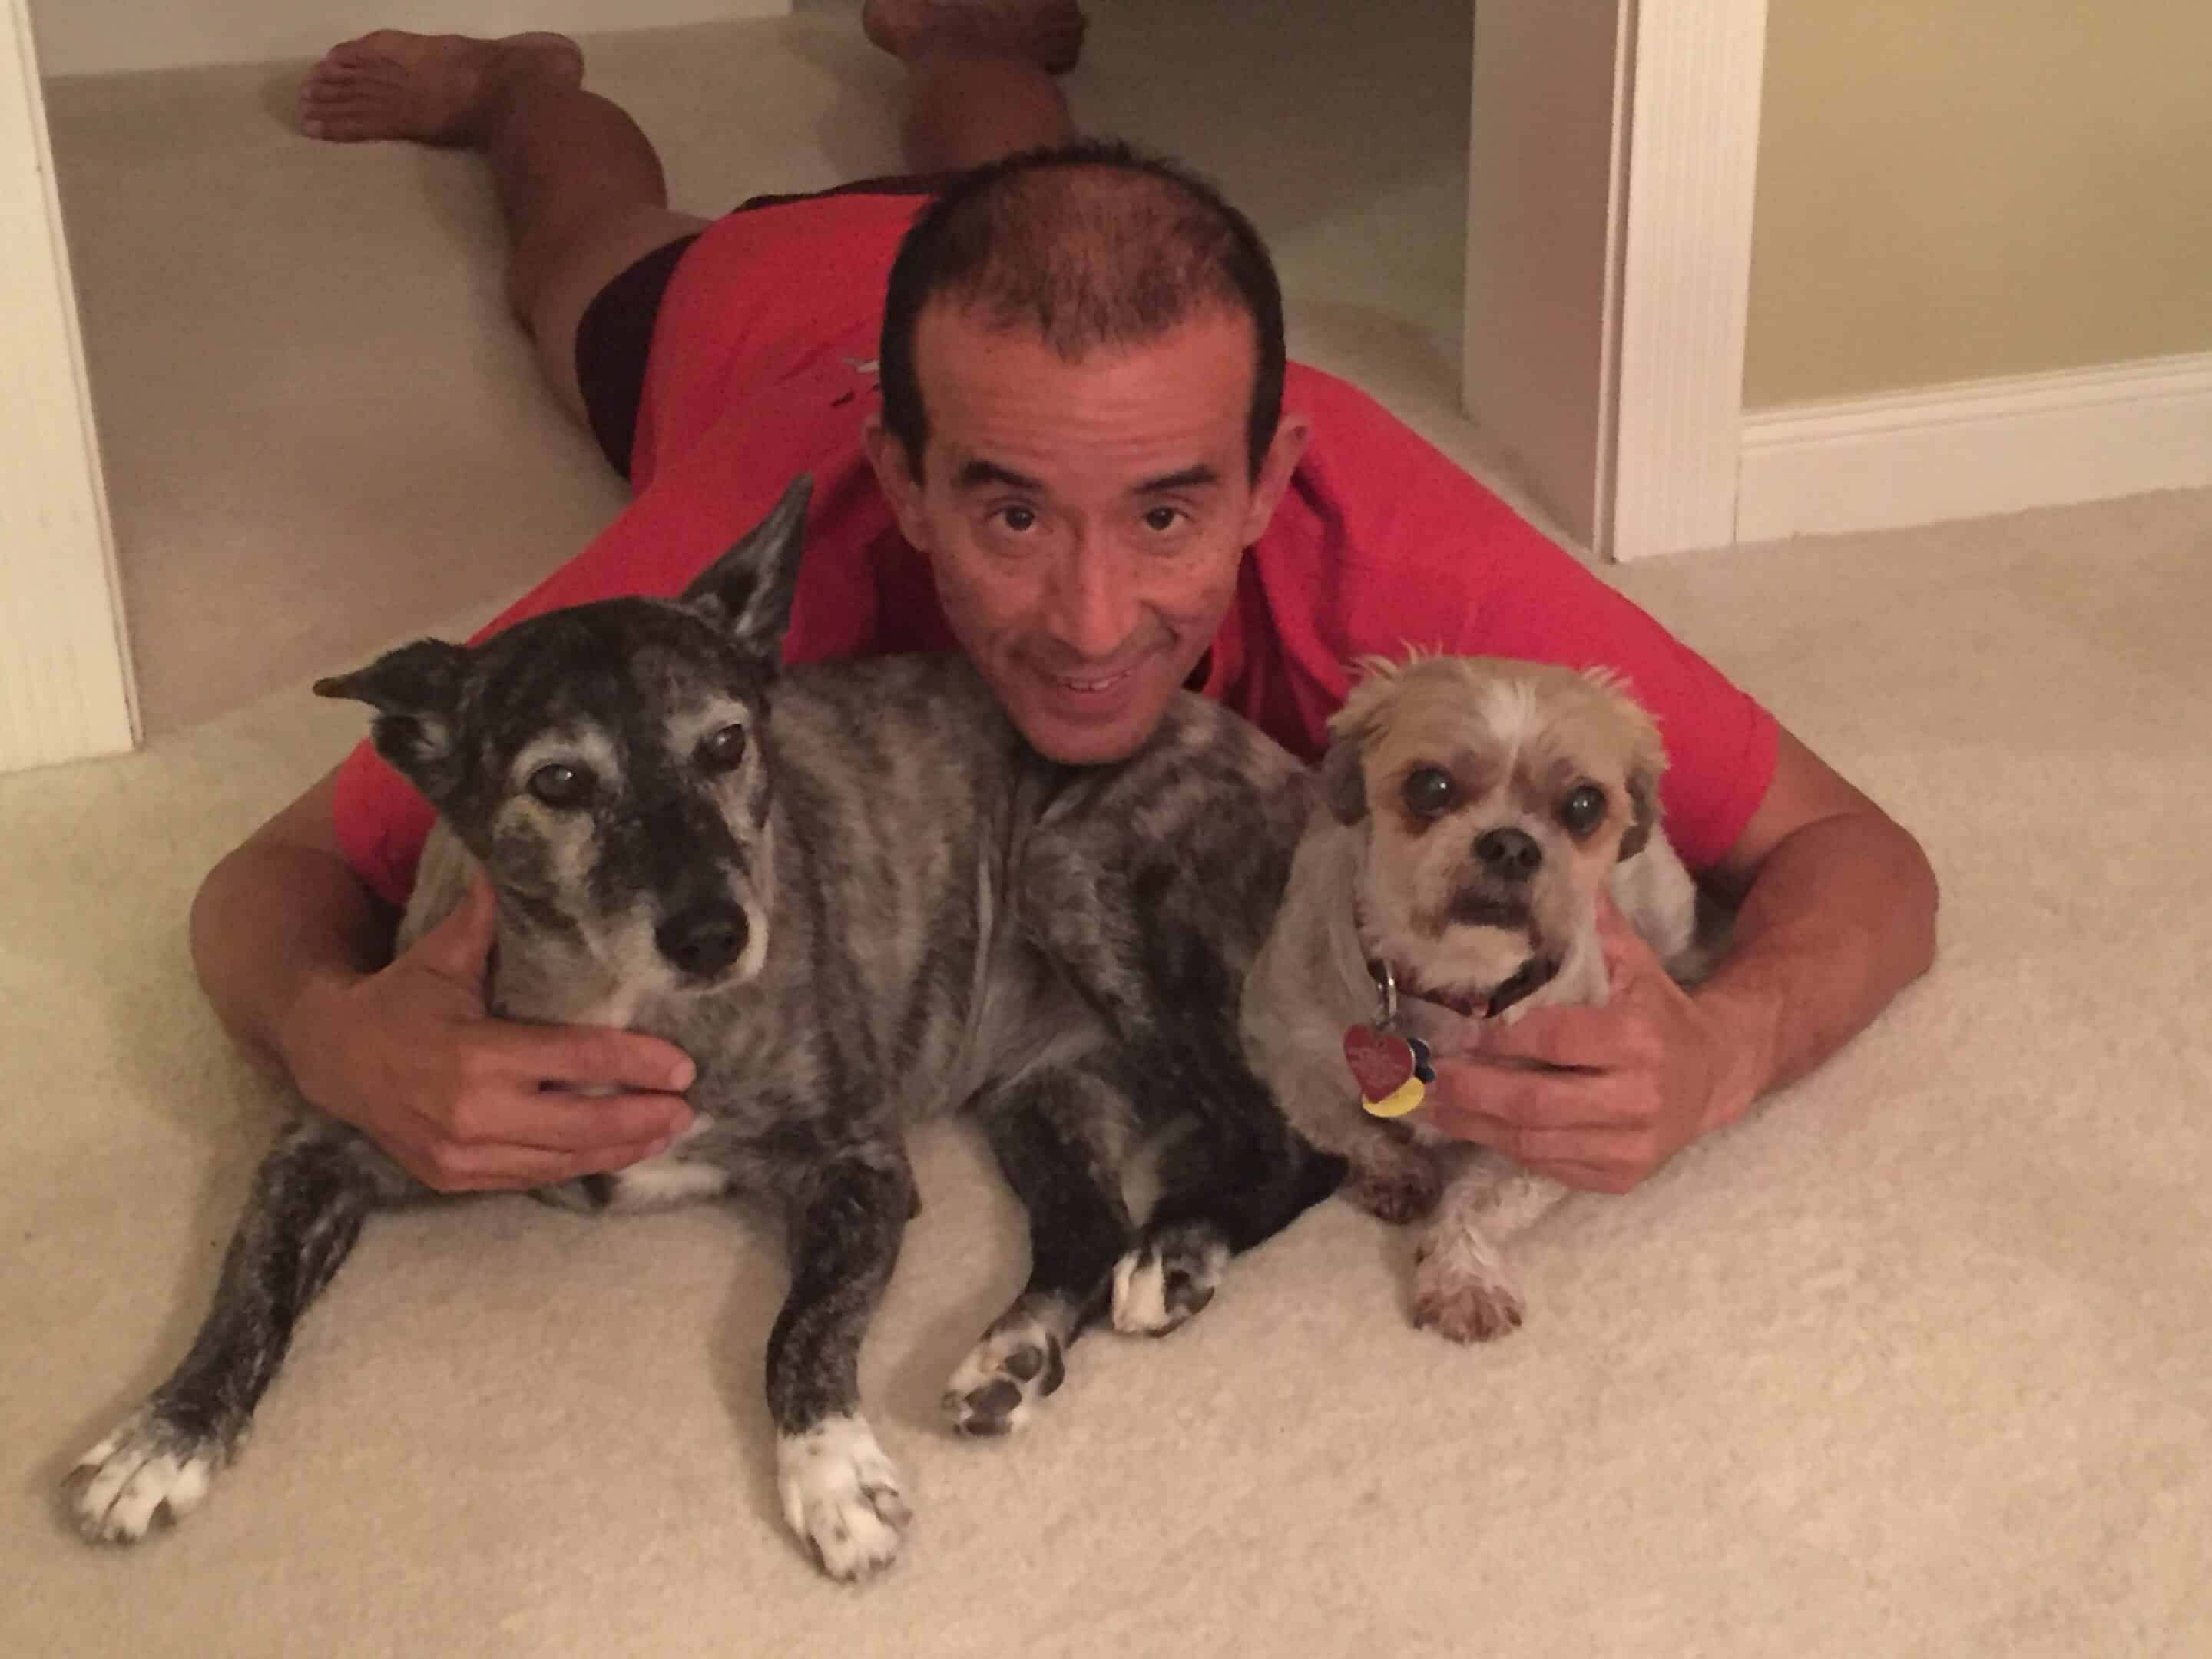 Kiwi, our beloved dog, with Bentley, her brother, and Jim